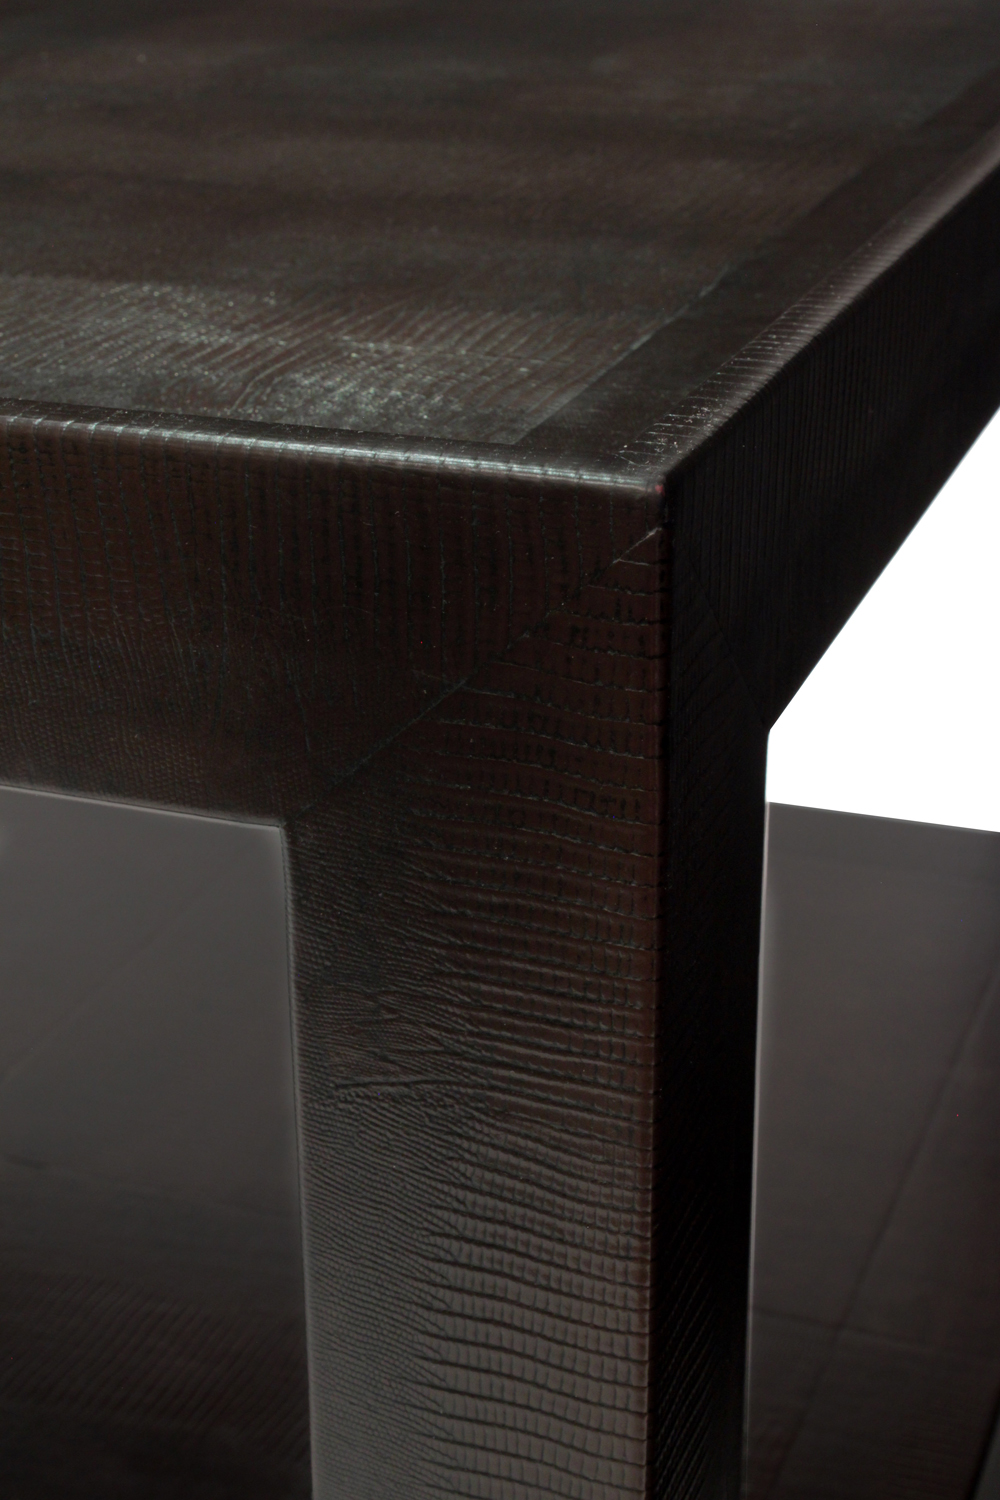 Springer 85 2tier emb lizard coffeetable302 detail4 hires.jpg